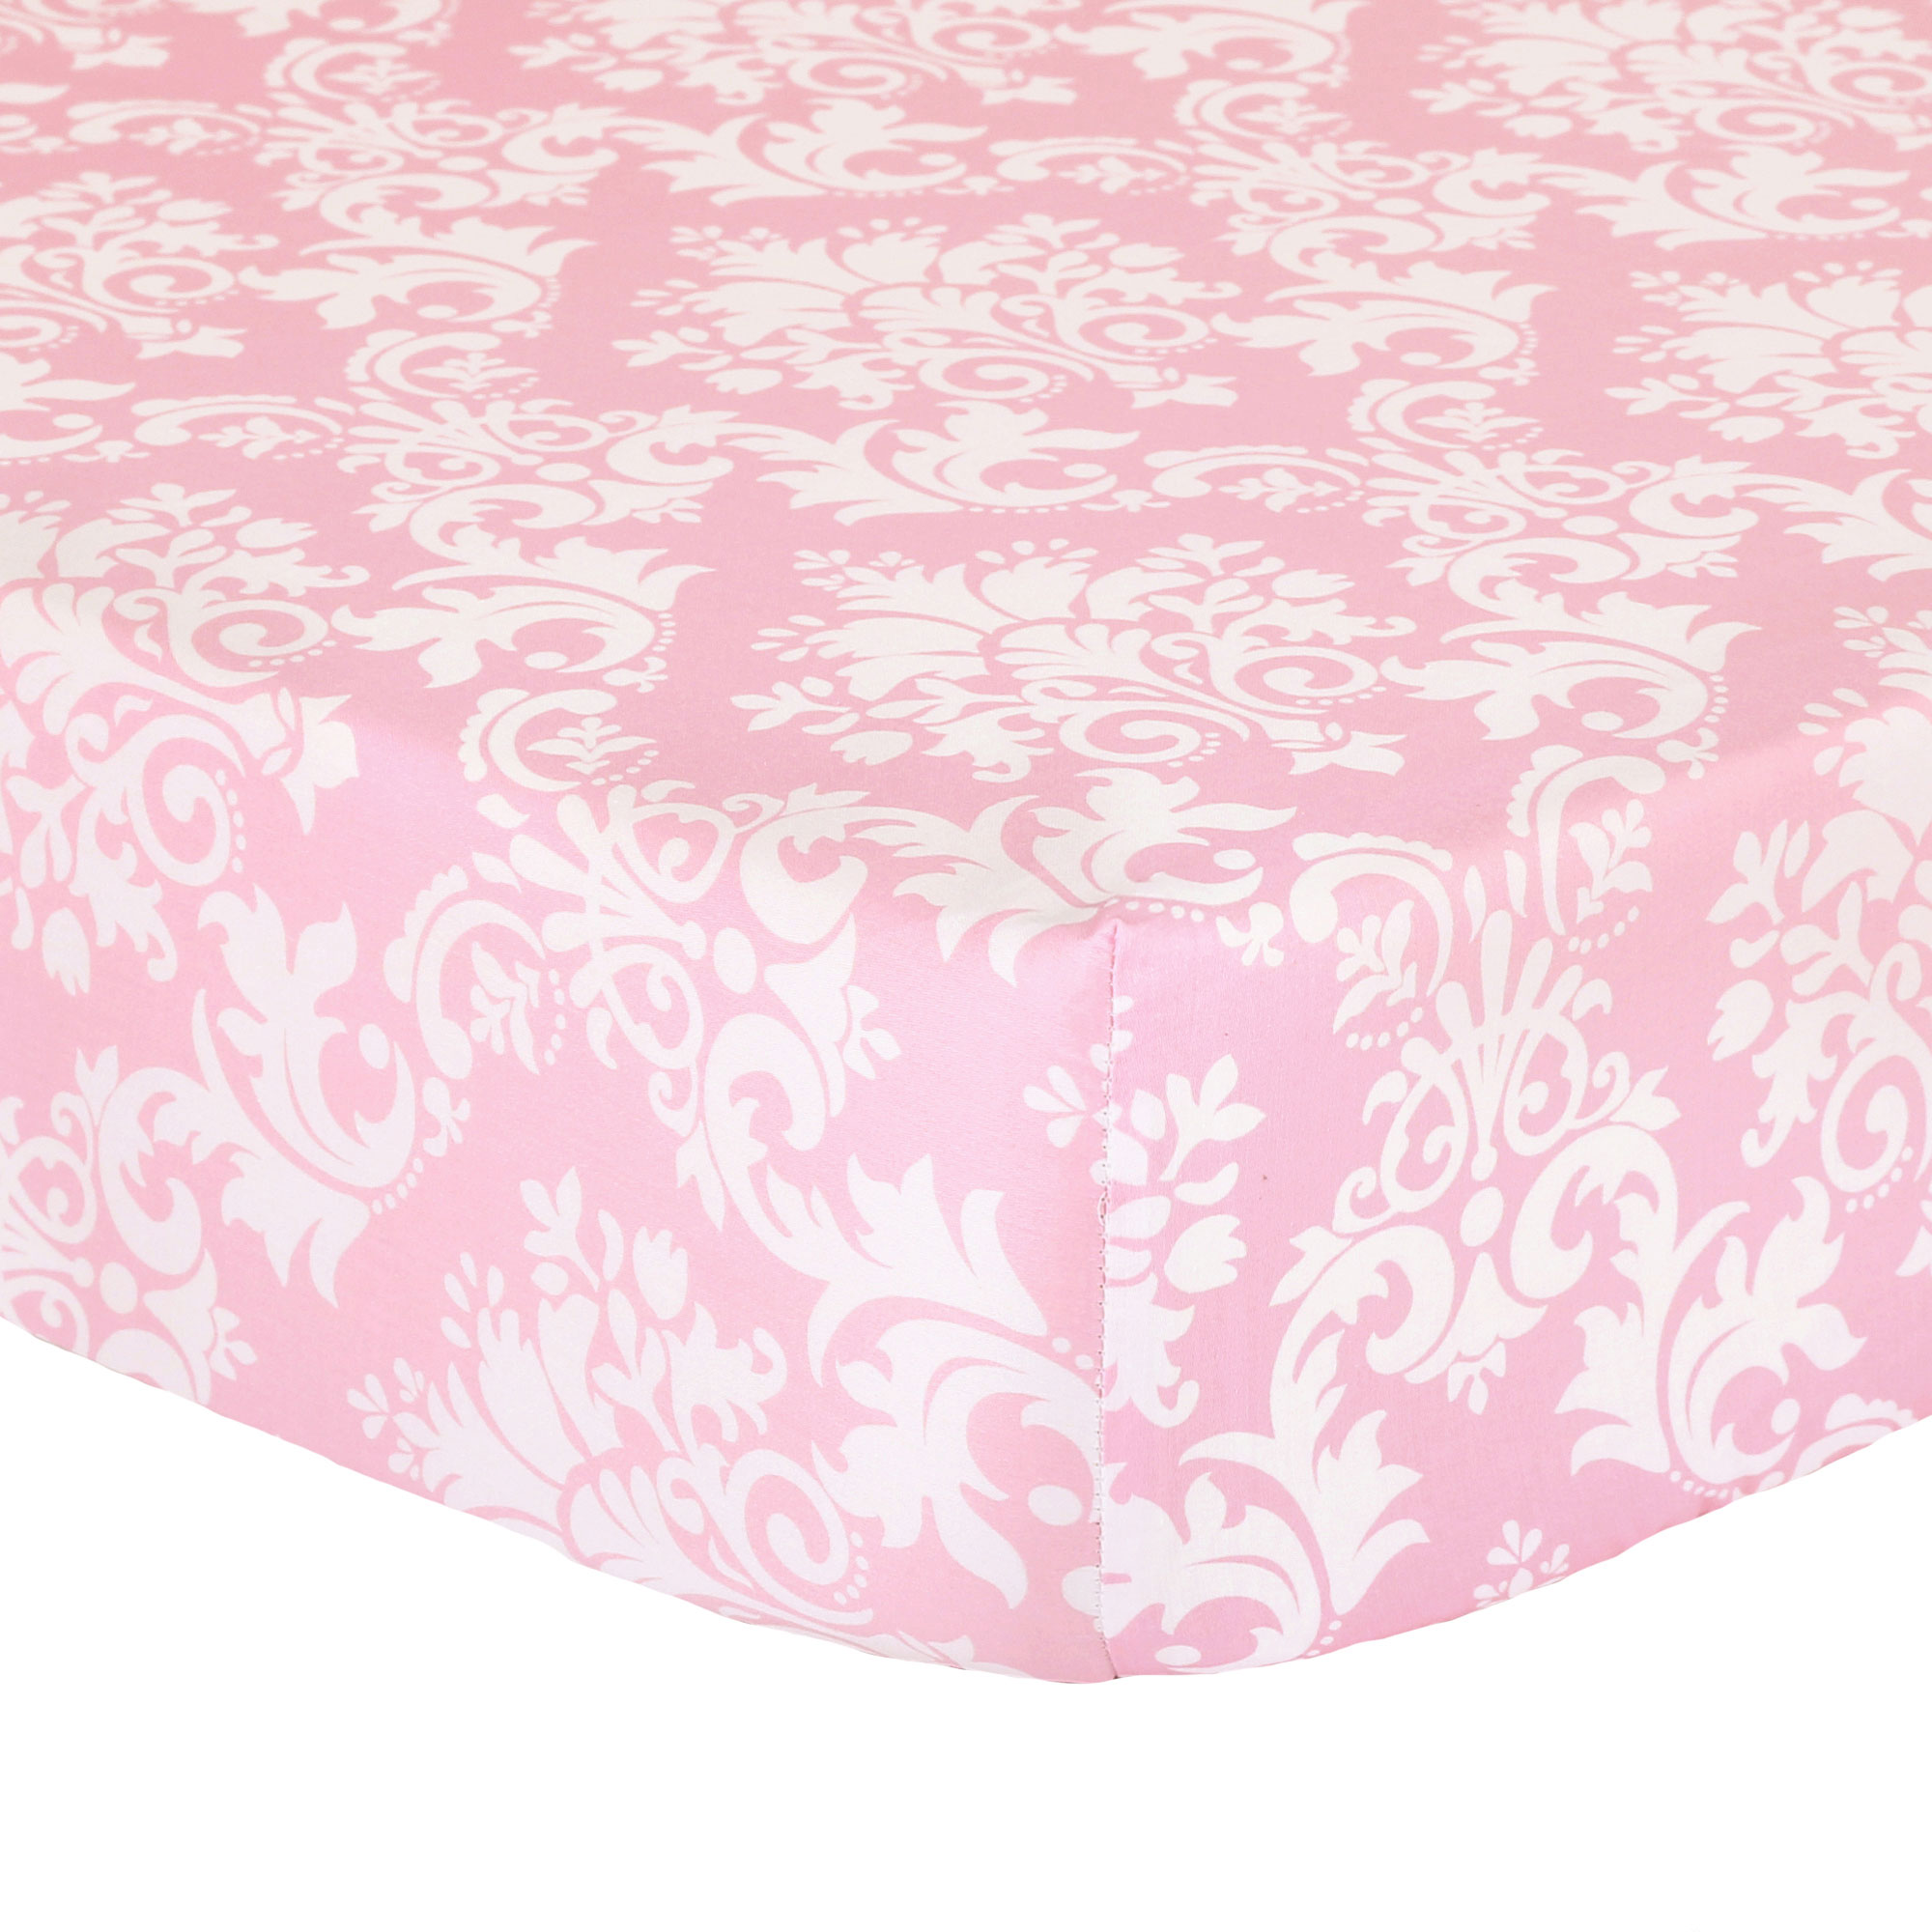 The Peanut Shell Baby Crib Fitted Sheet Pink Floral